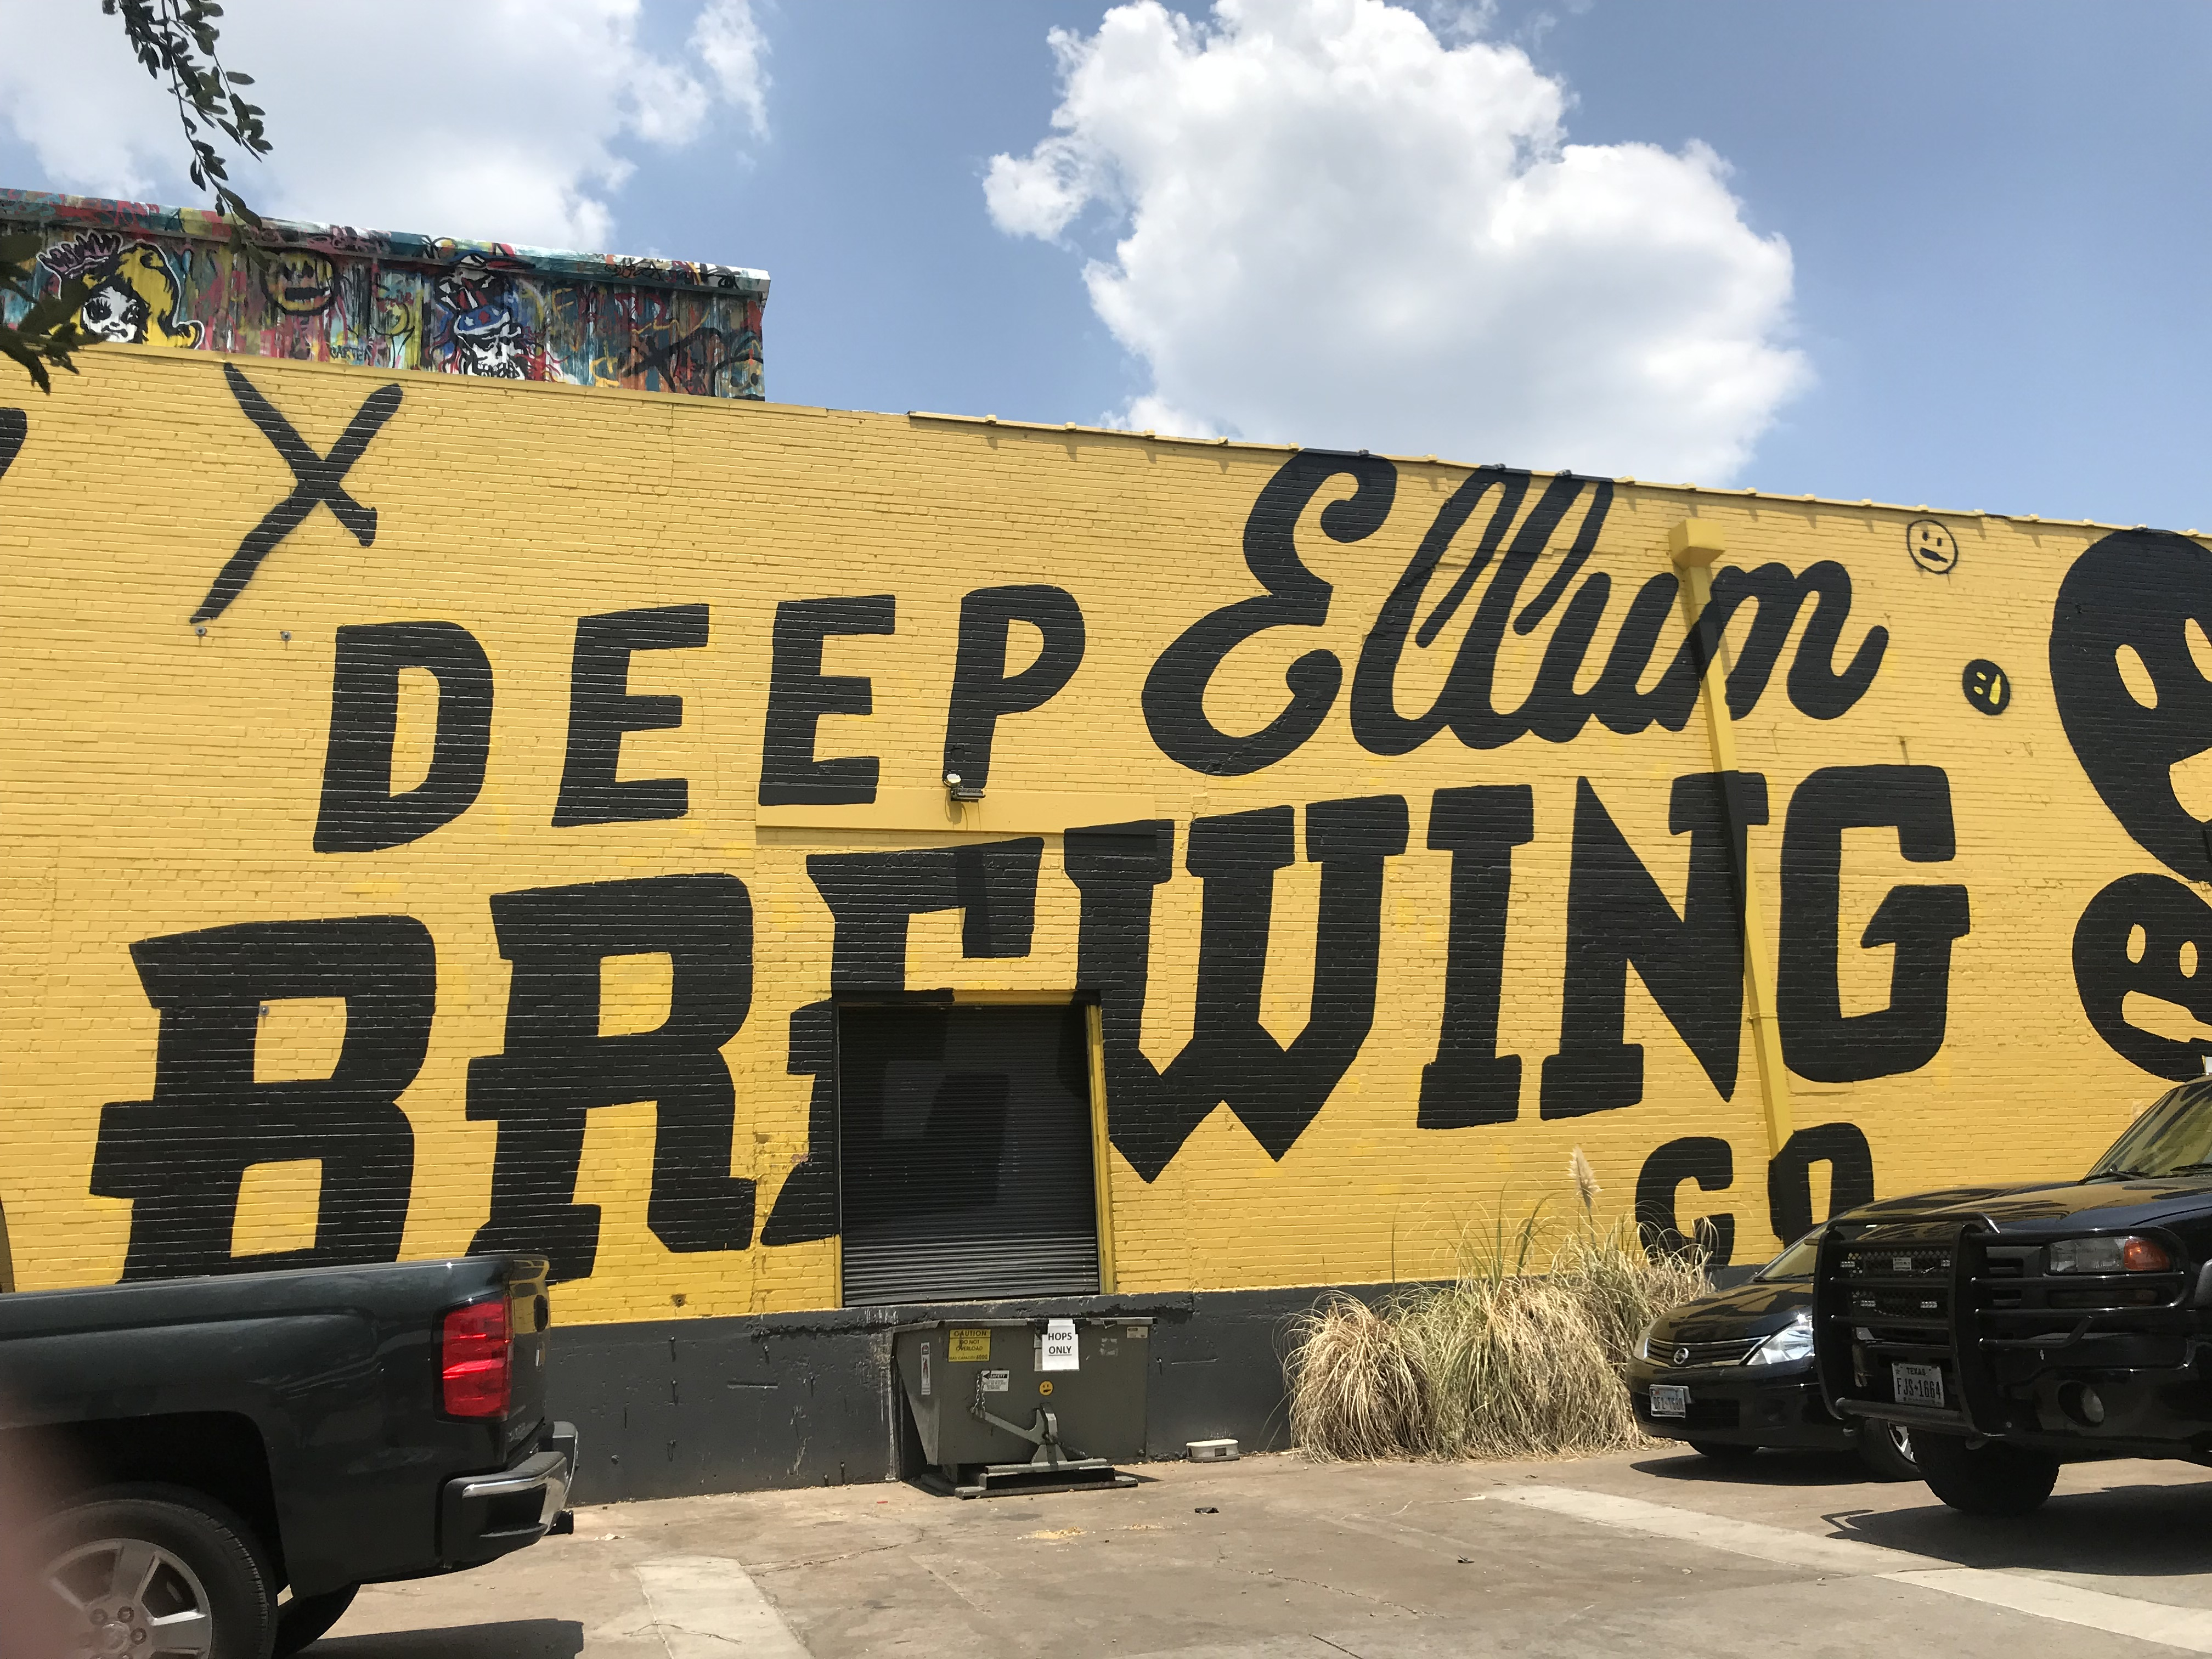 The Best Things To Do In Dallas You'll Want to Do featured by popular San Diego travel blogger, The Brunette & The Beach: Dallas' Deep Ellum Brewing Co